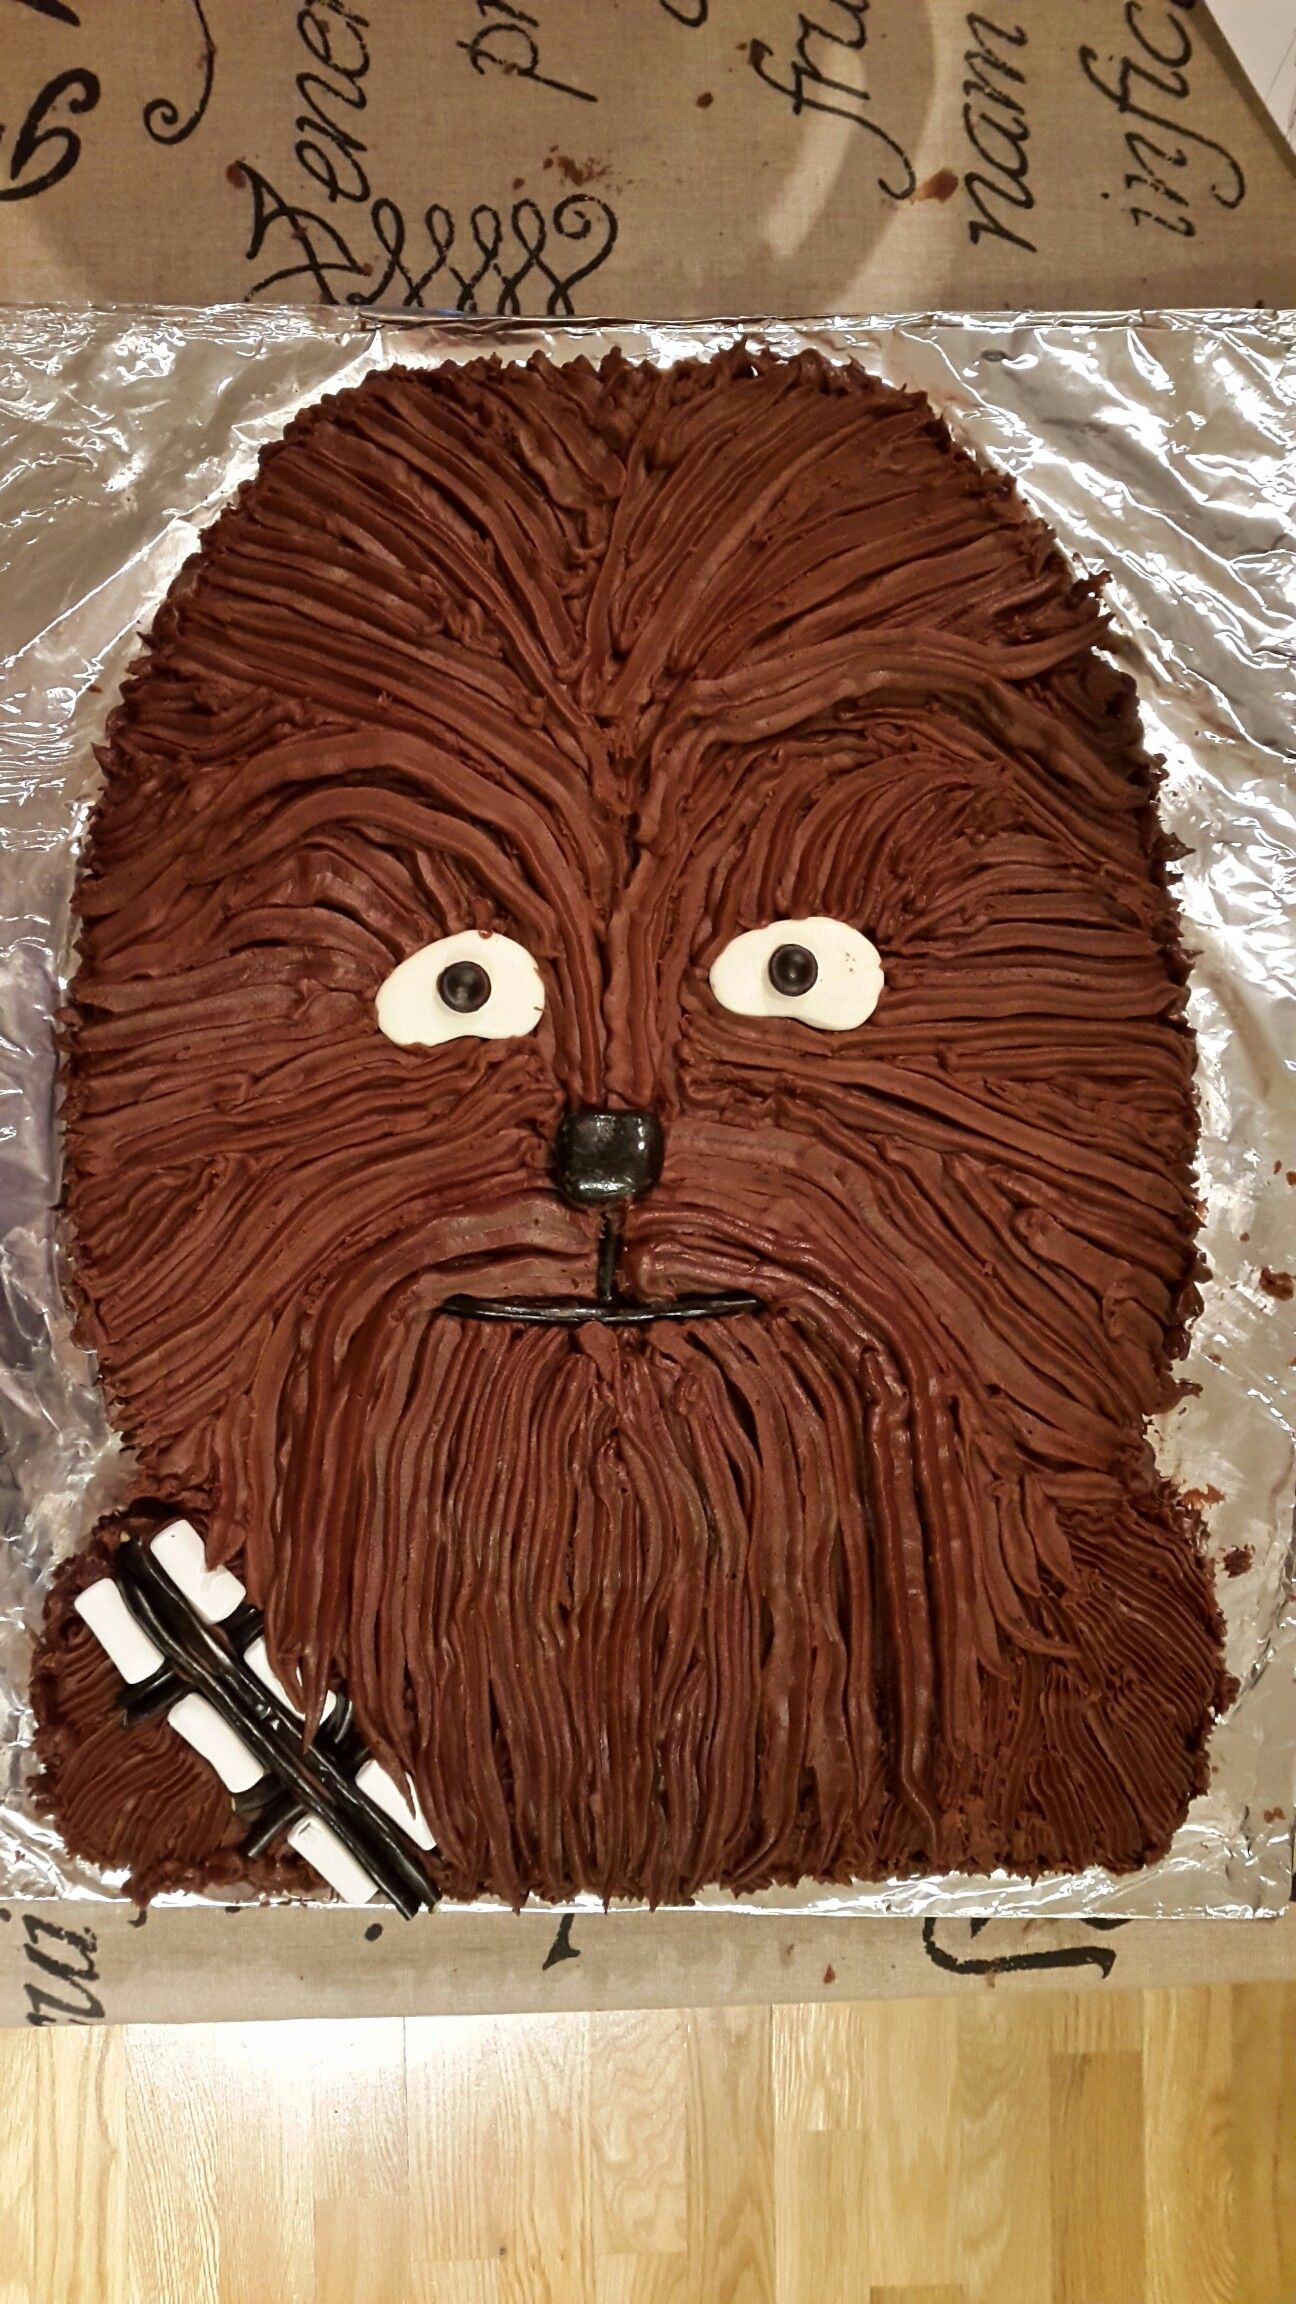 Chewbacca Cake Birthday 2017 Pinterest Cake Birthday Cake And